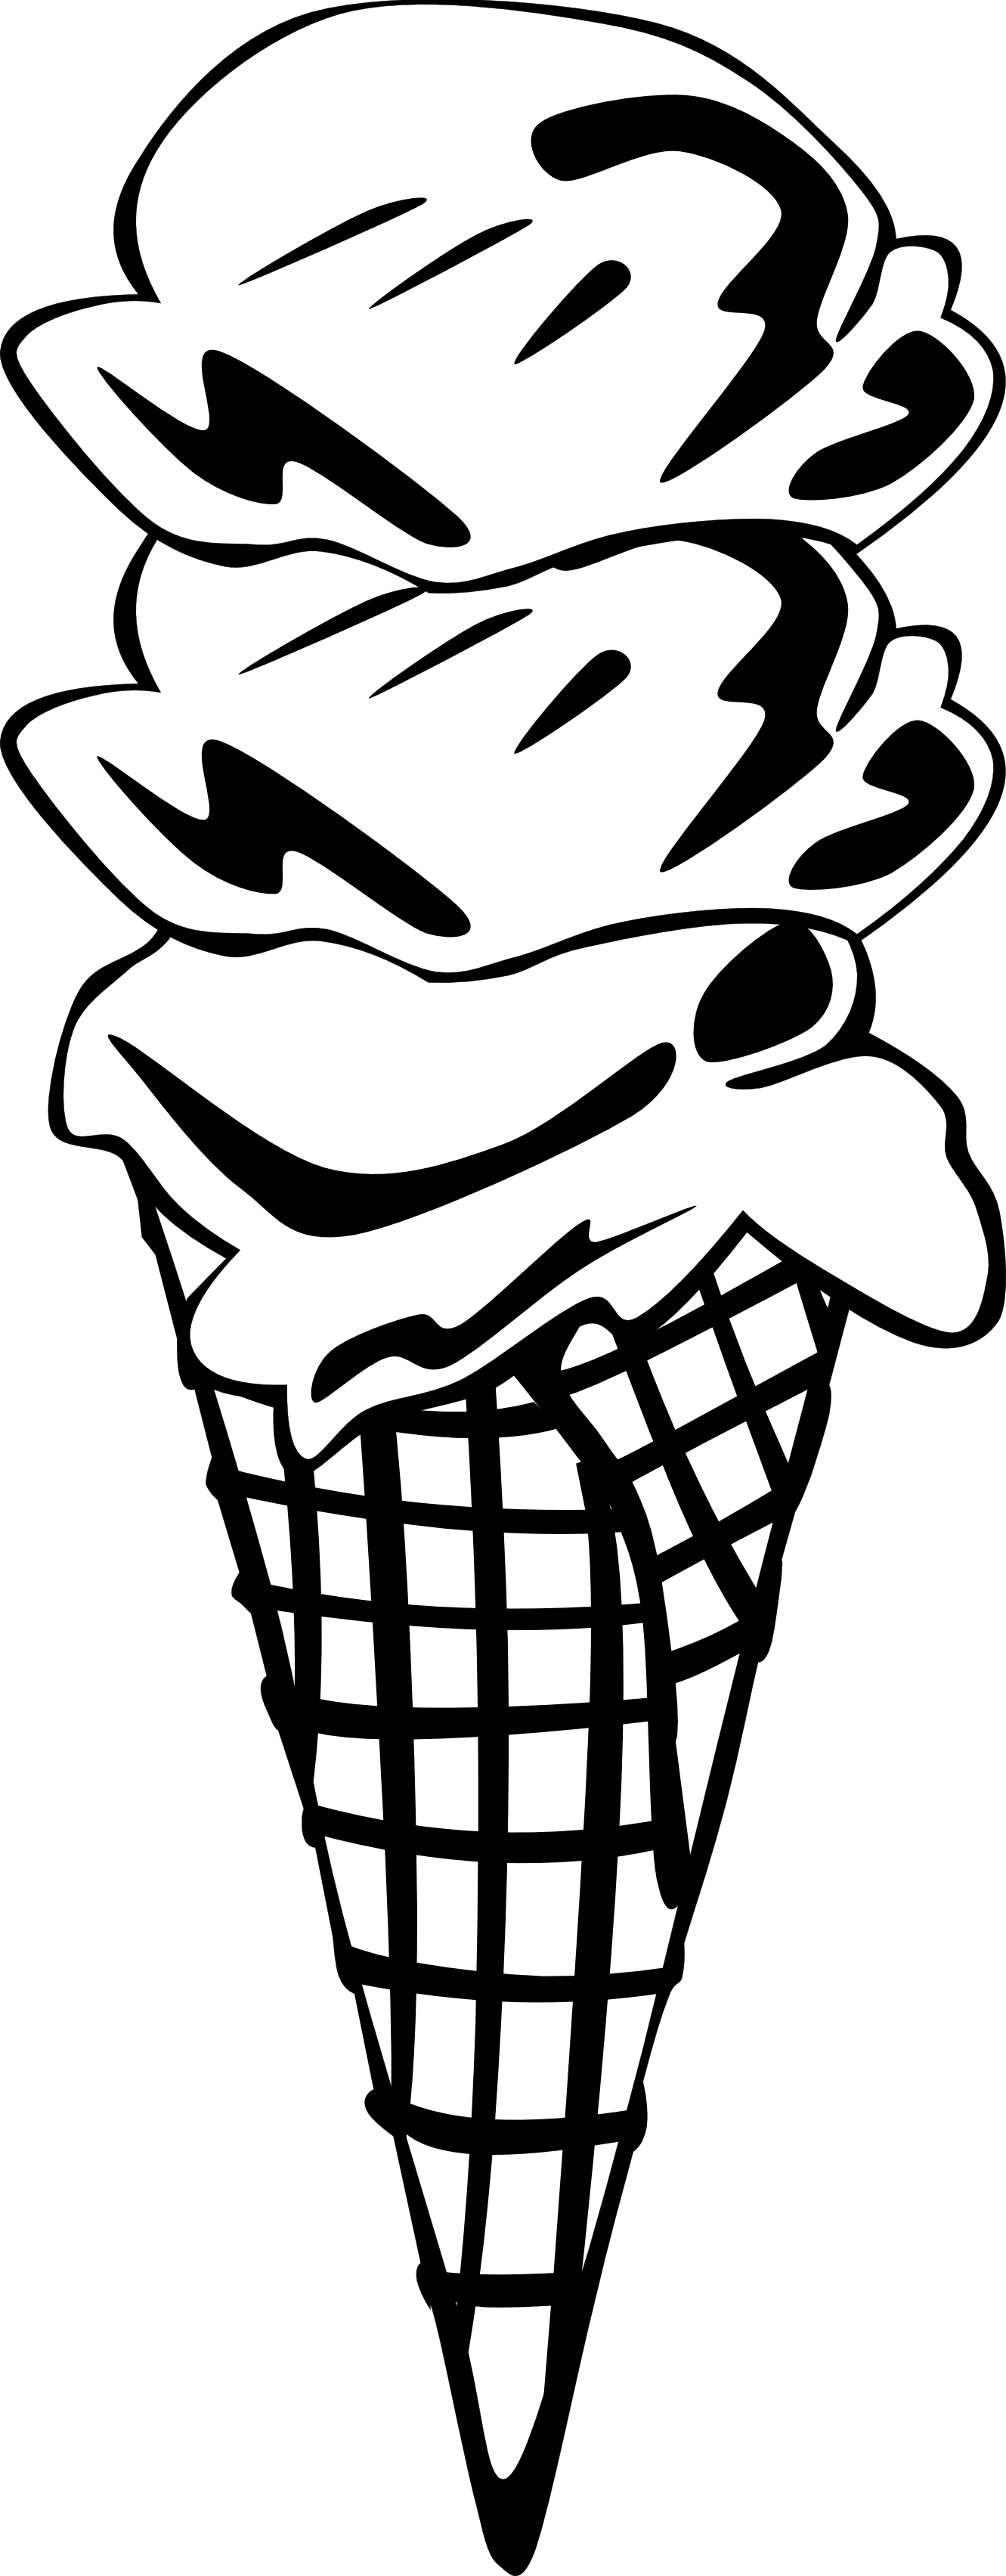 White clipart ice cream. Line drawing at getdrawings